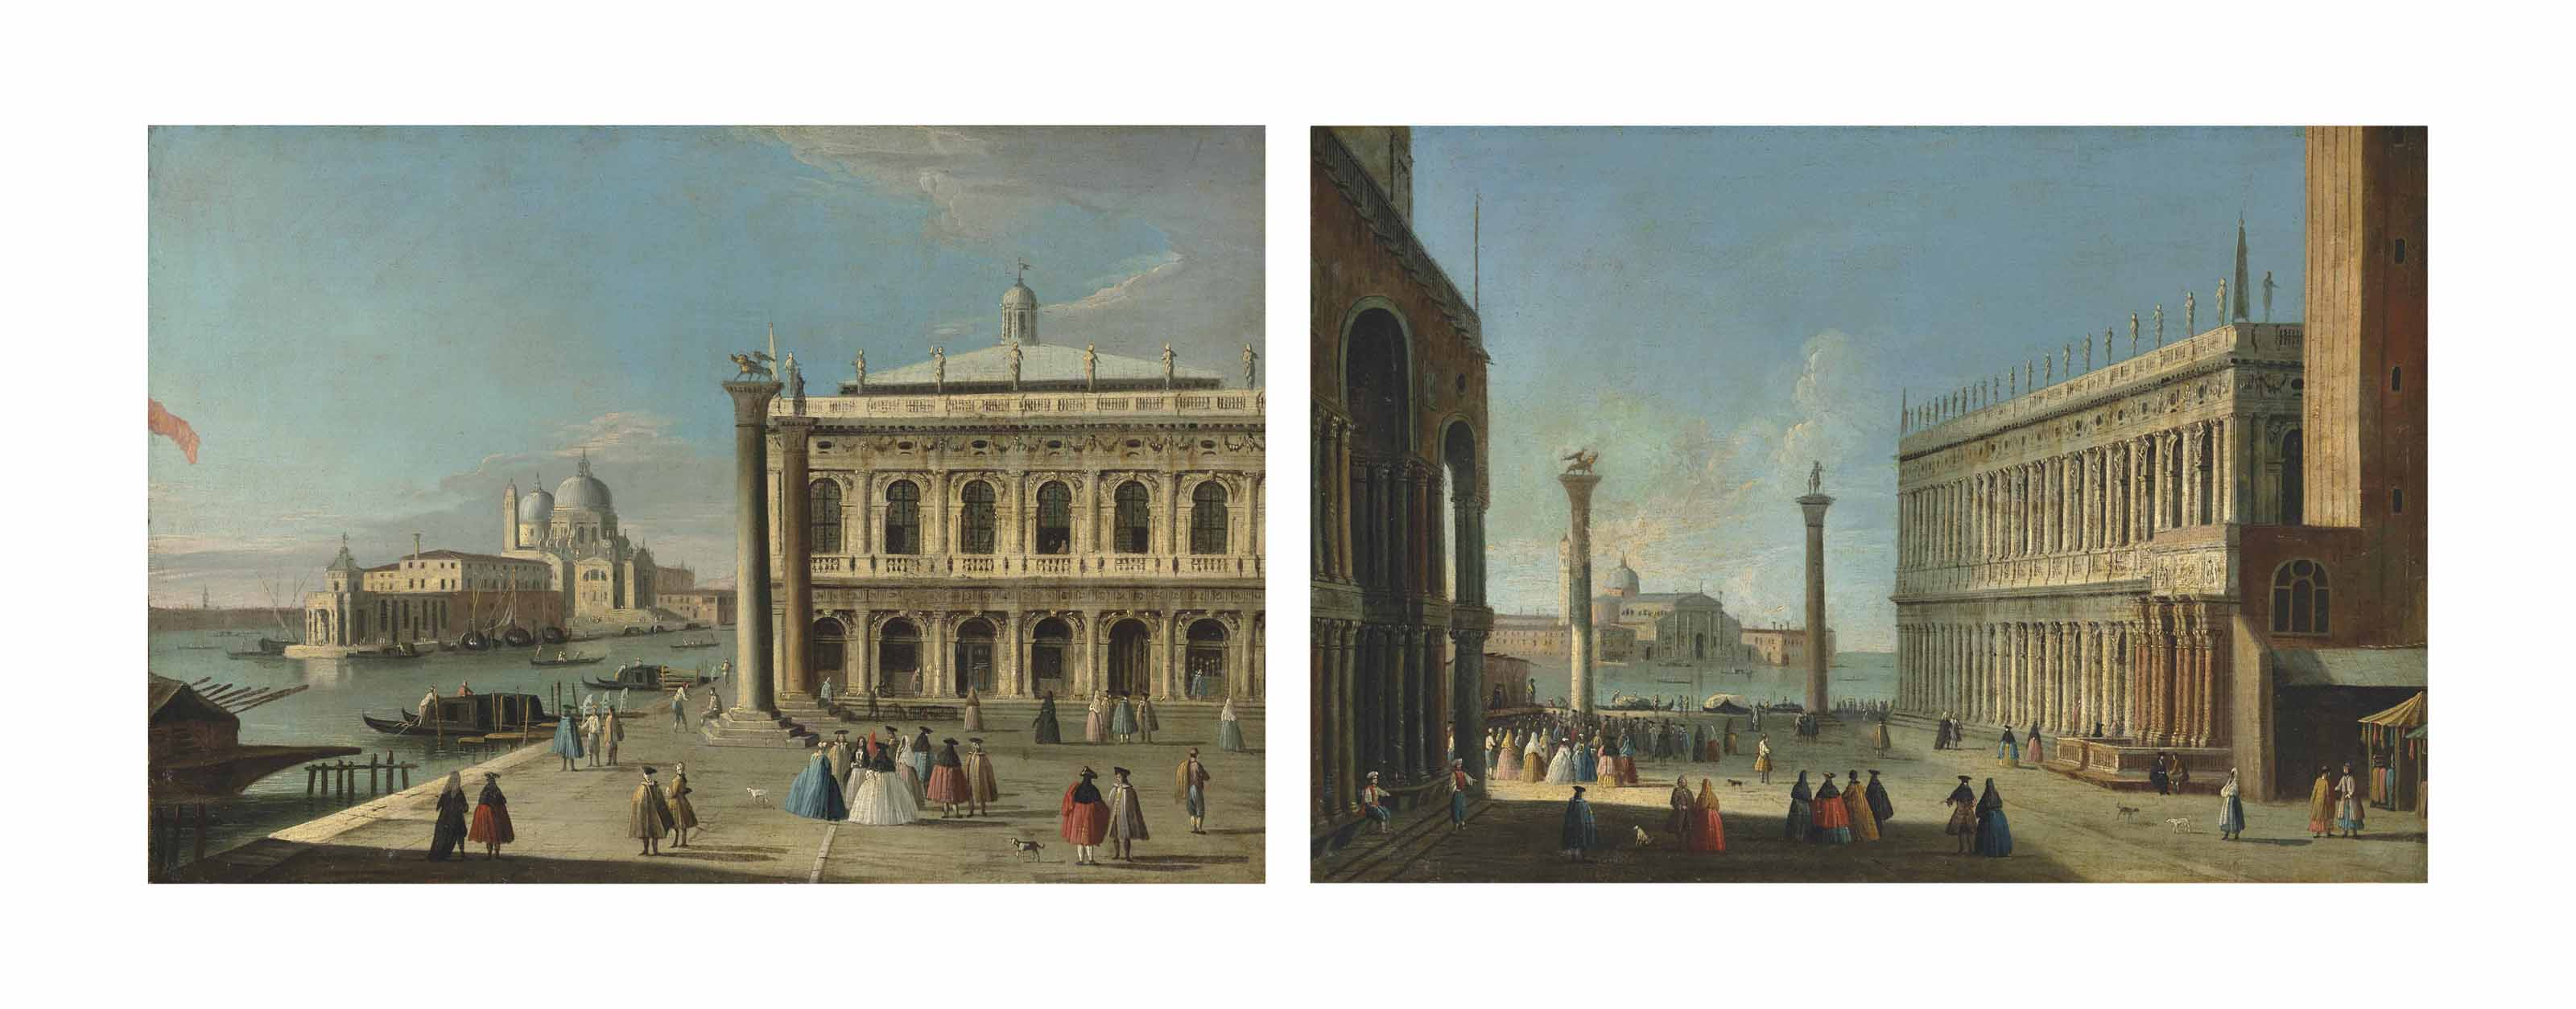 The Piazzetta, Venice, with the Libreria, the entrance to the Grand Canal with the Dogana and Santa Maria della Salute; and The Piazzetta, Venice, with the Libreria, elegant company conversing by the columns of San Marco and San Teodoro, looking south towards San Giorgio Maggiore